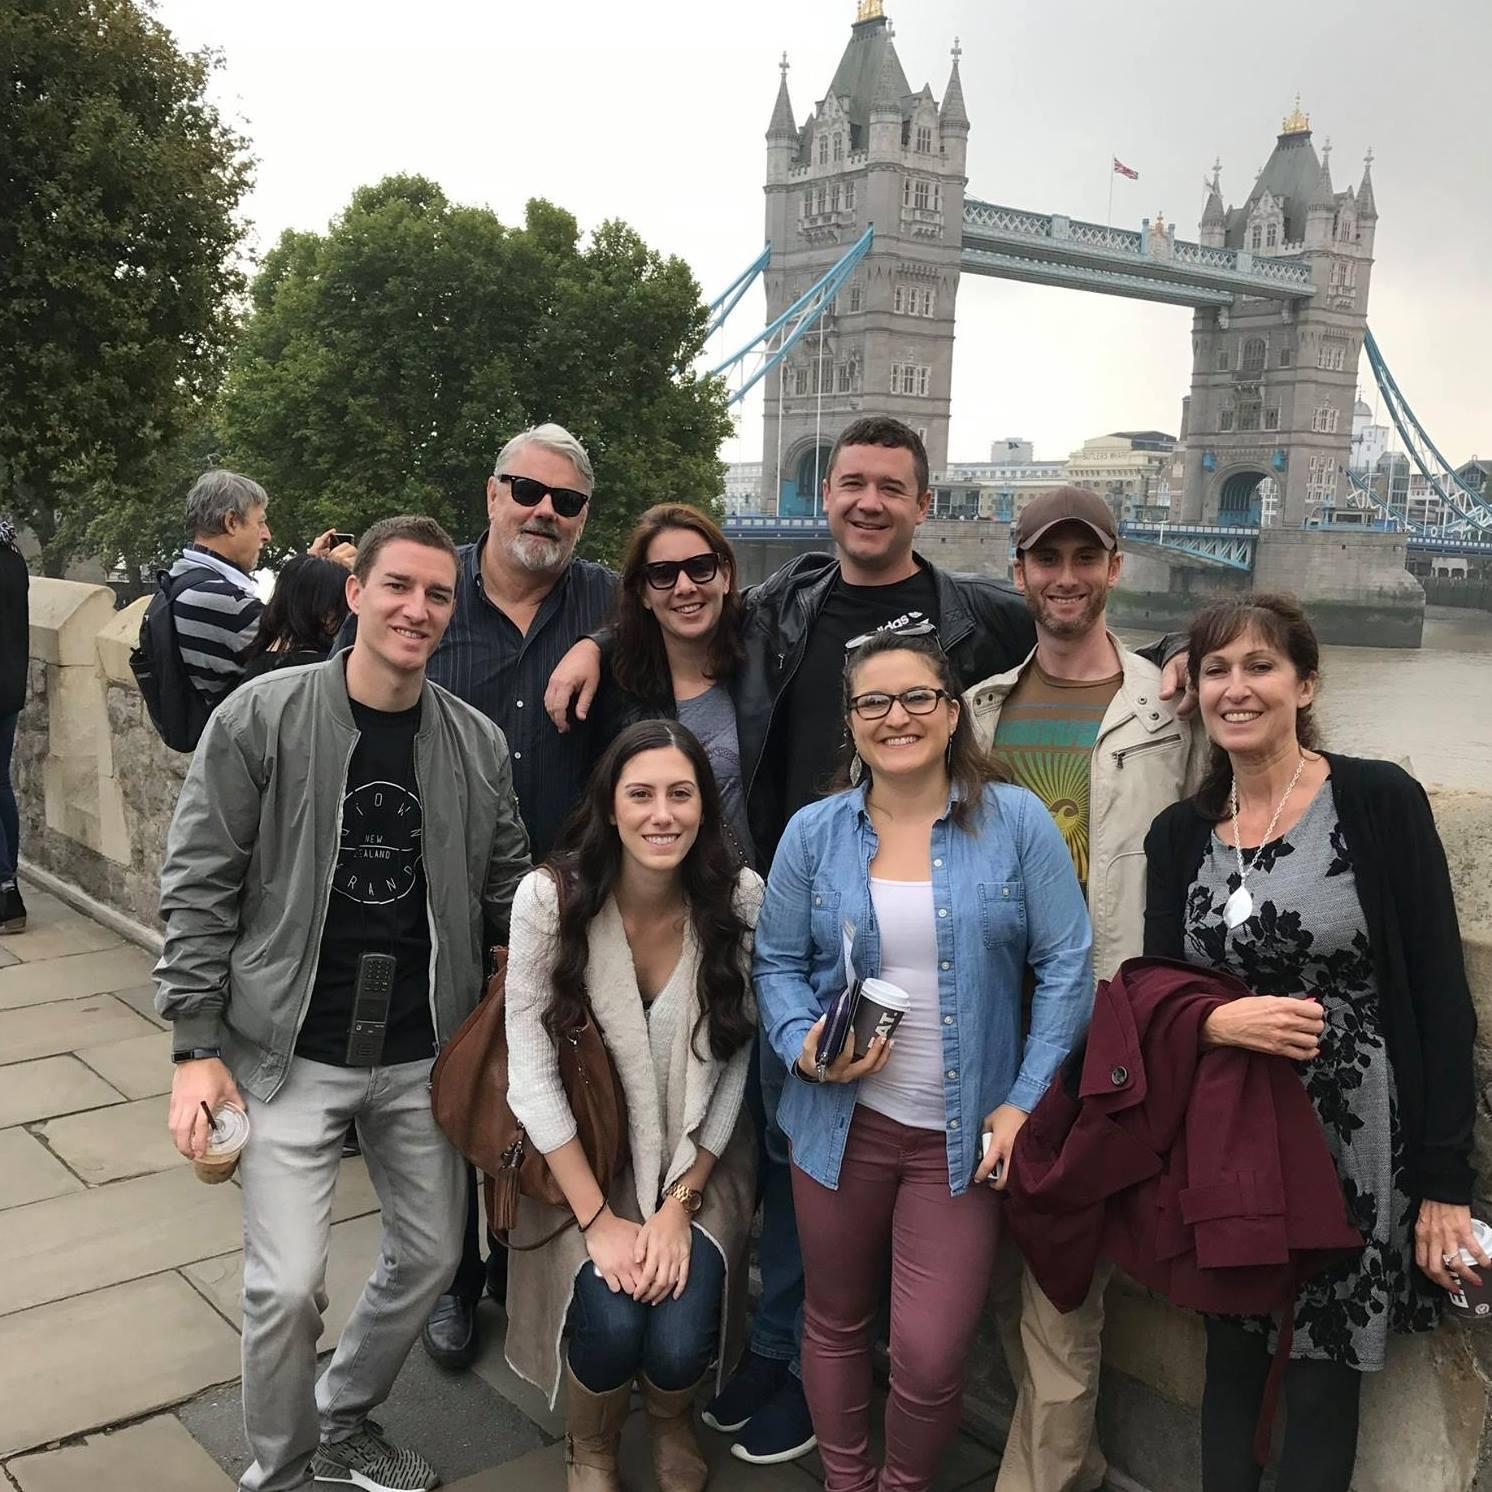 Family time in London